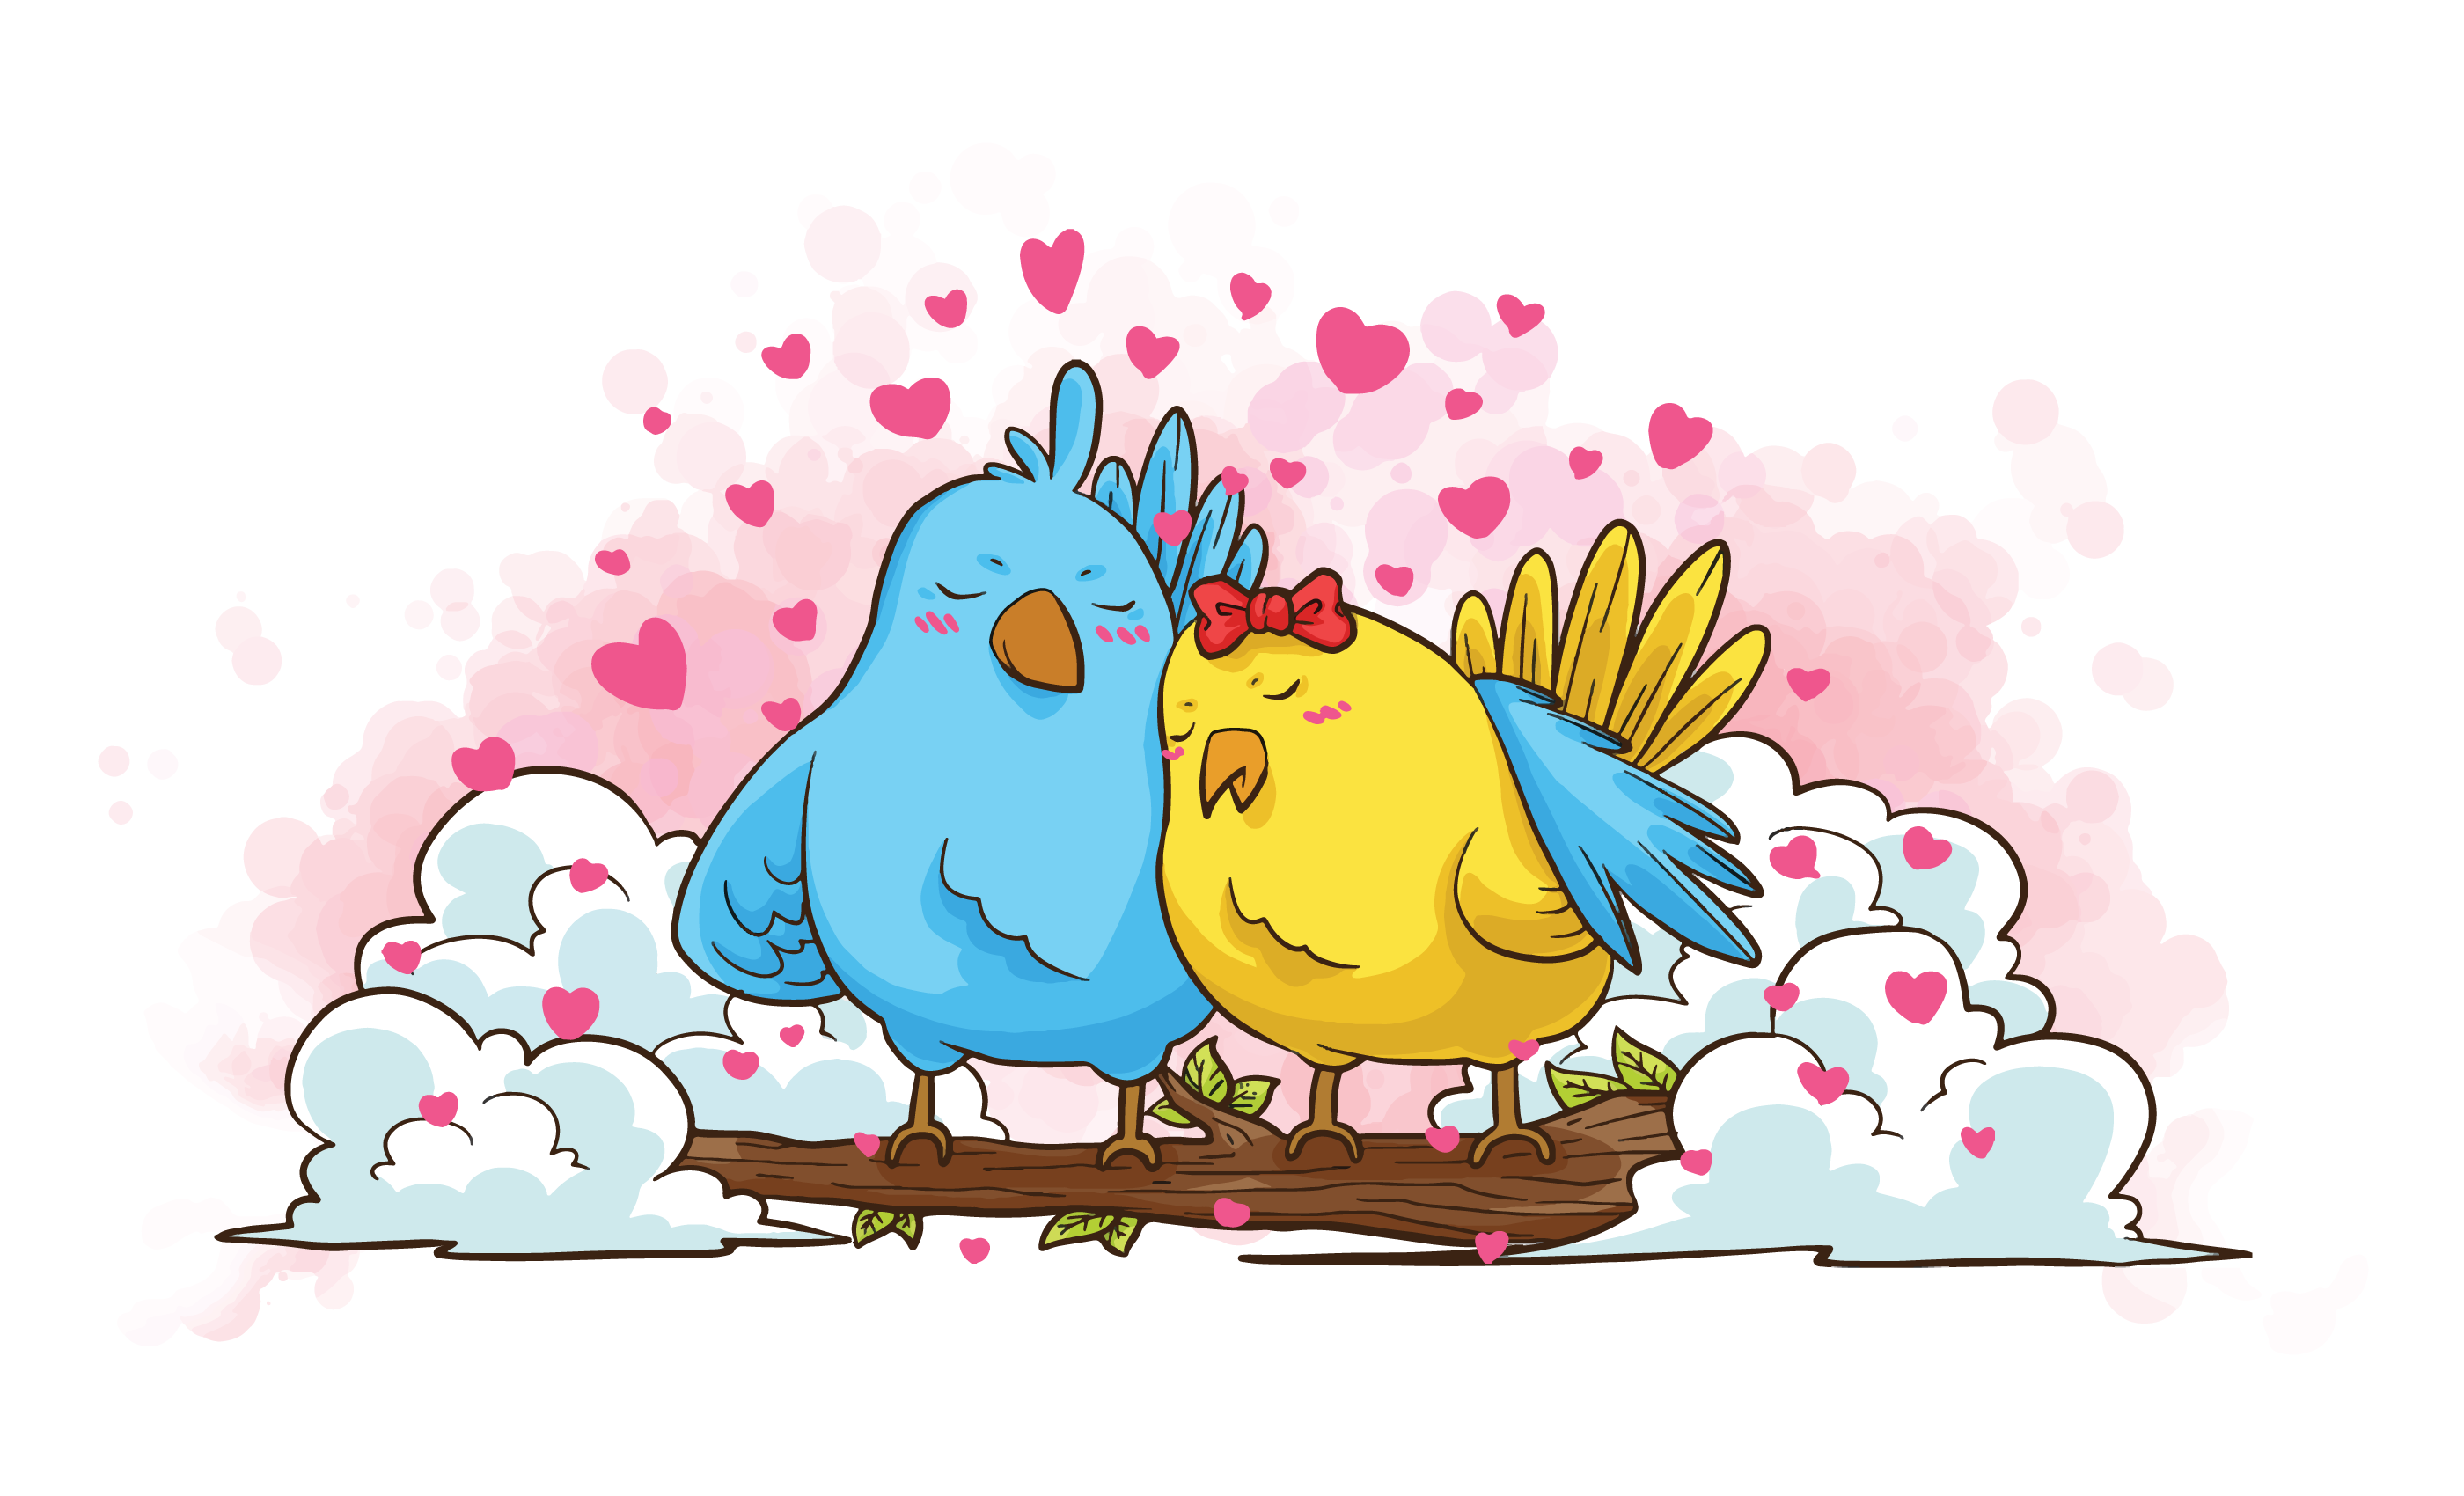 Creatures In Love Vector Illustration - Download Free ...